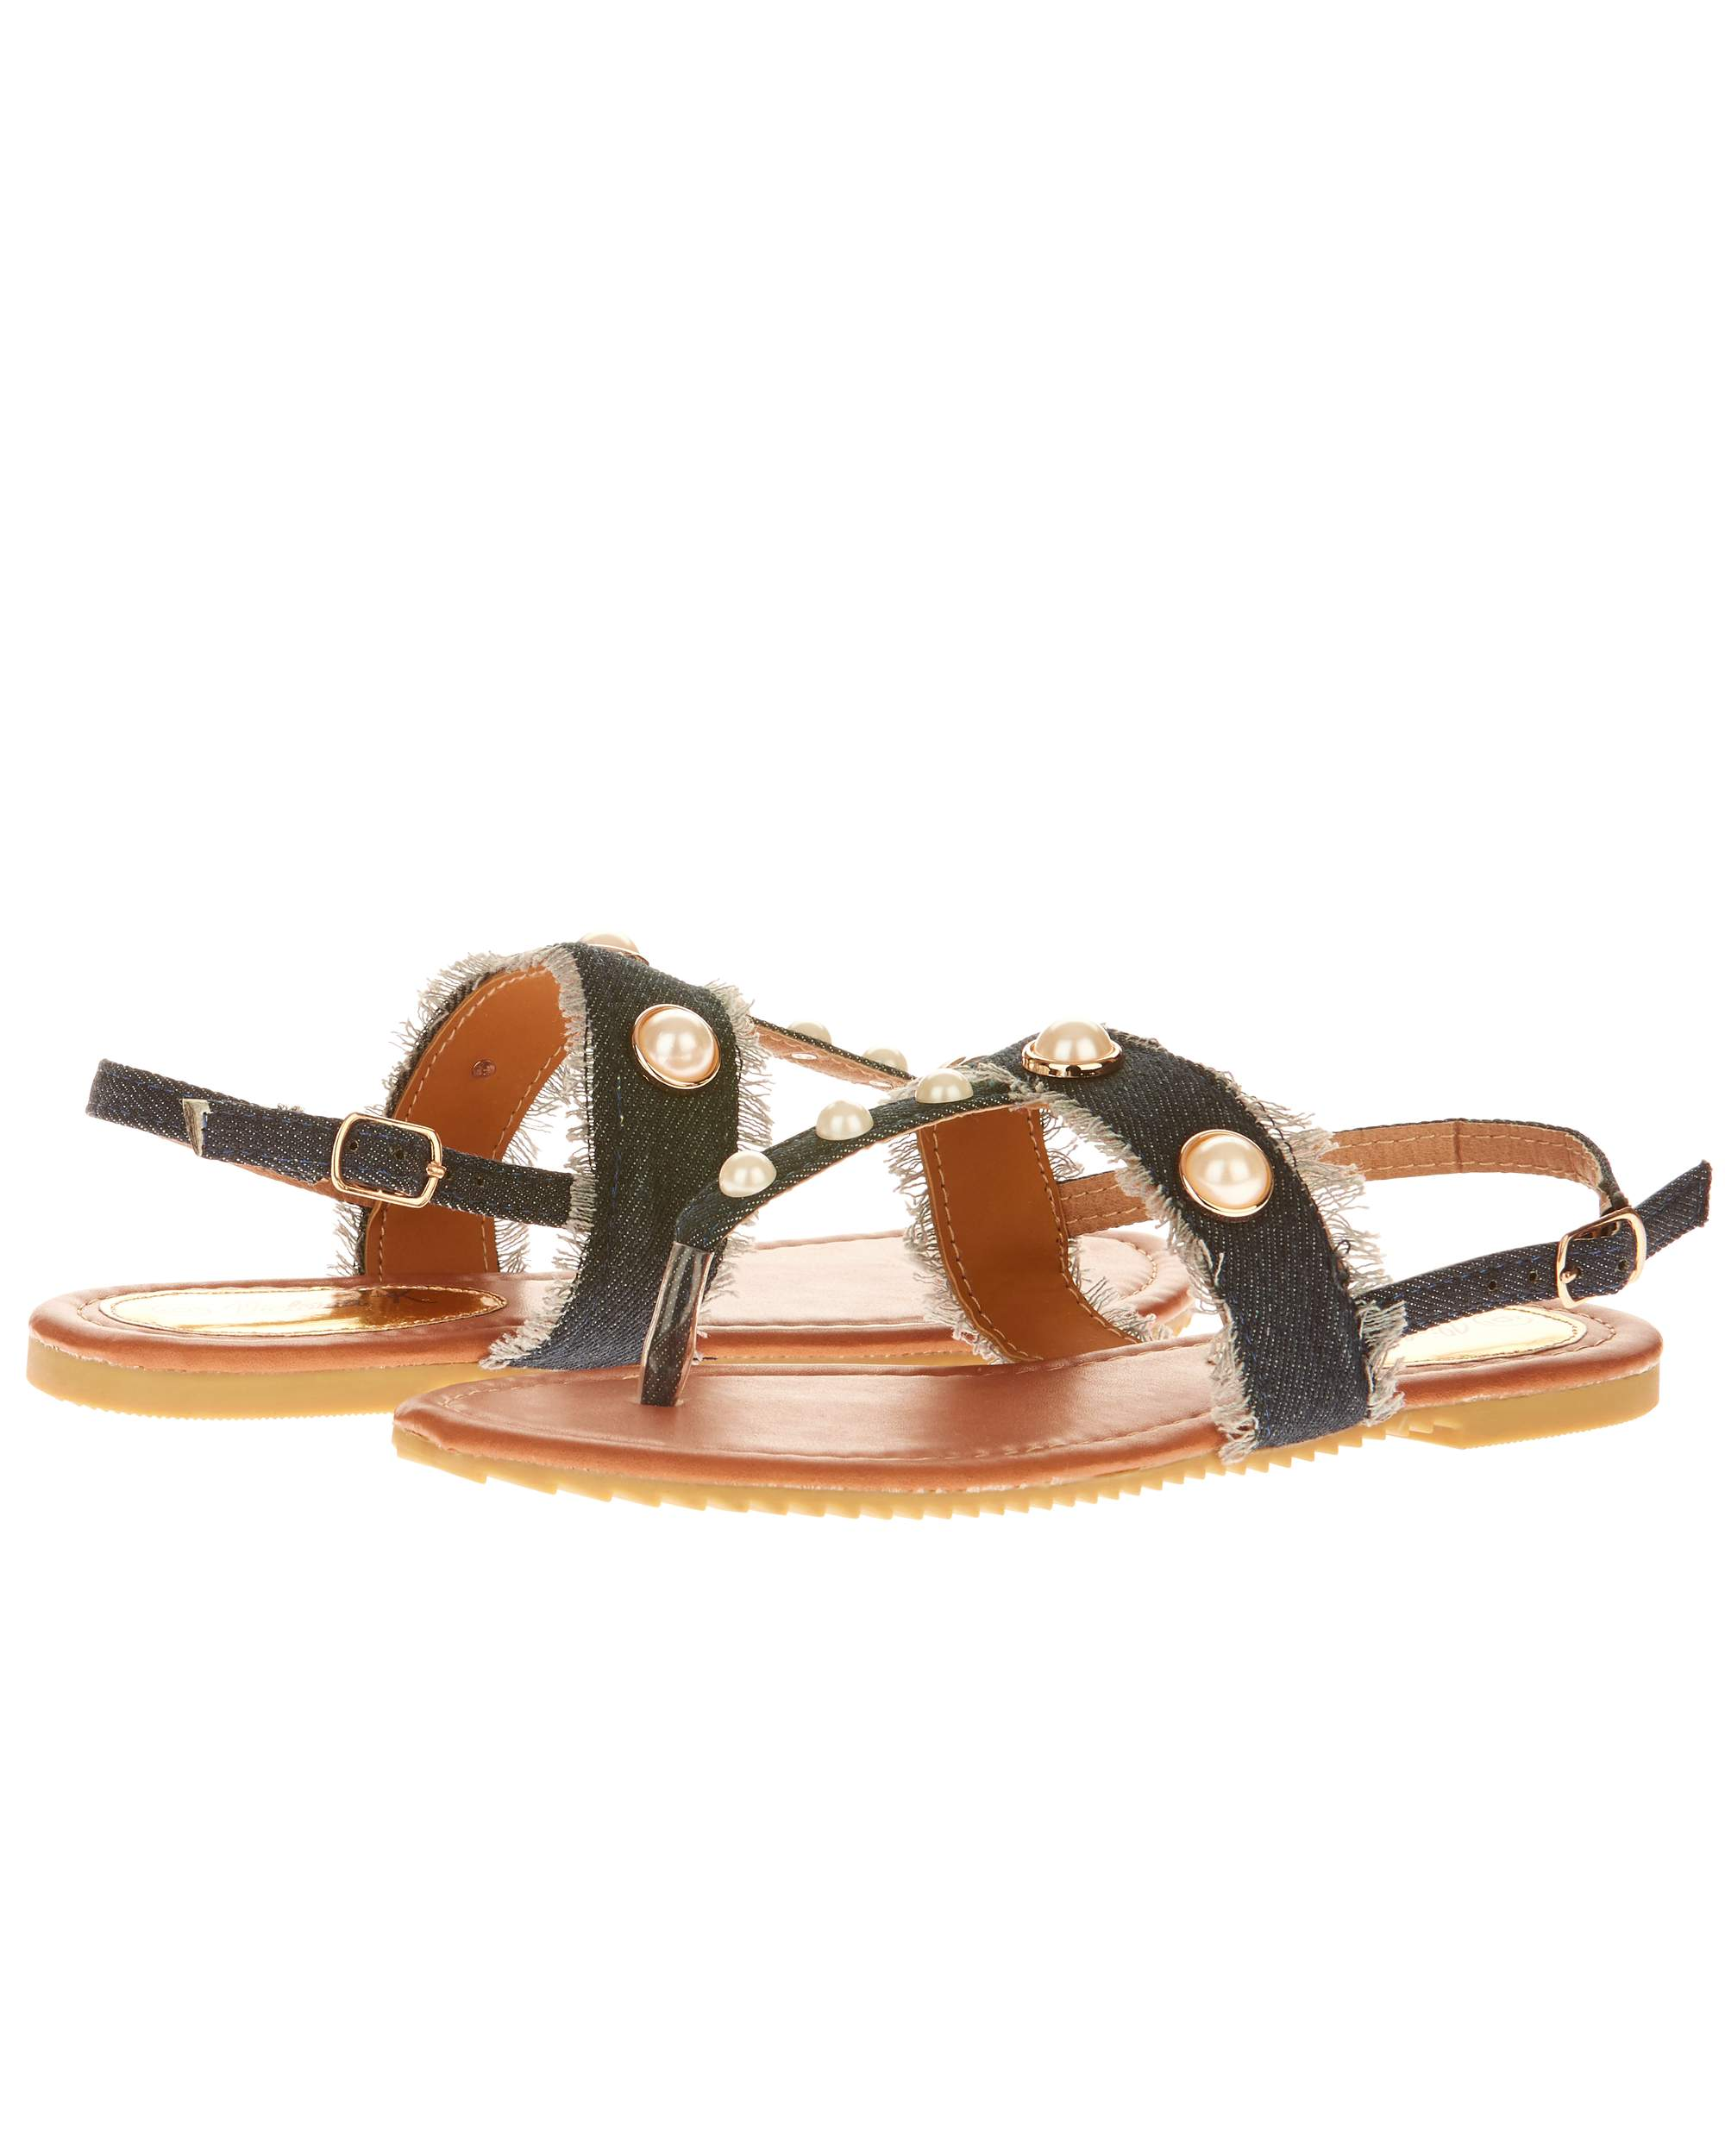 Victoria K Women's Denim and Pearls Sandals